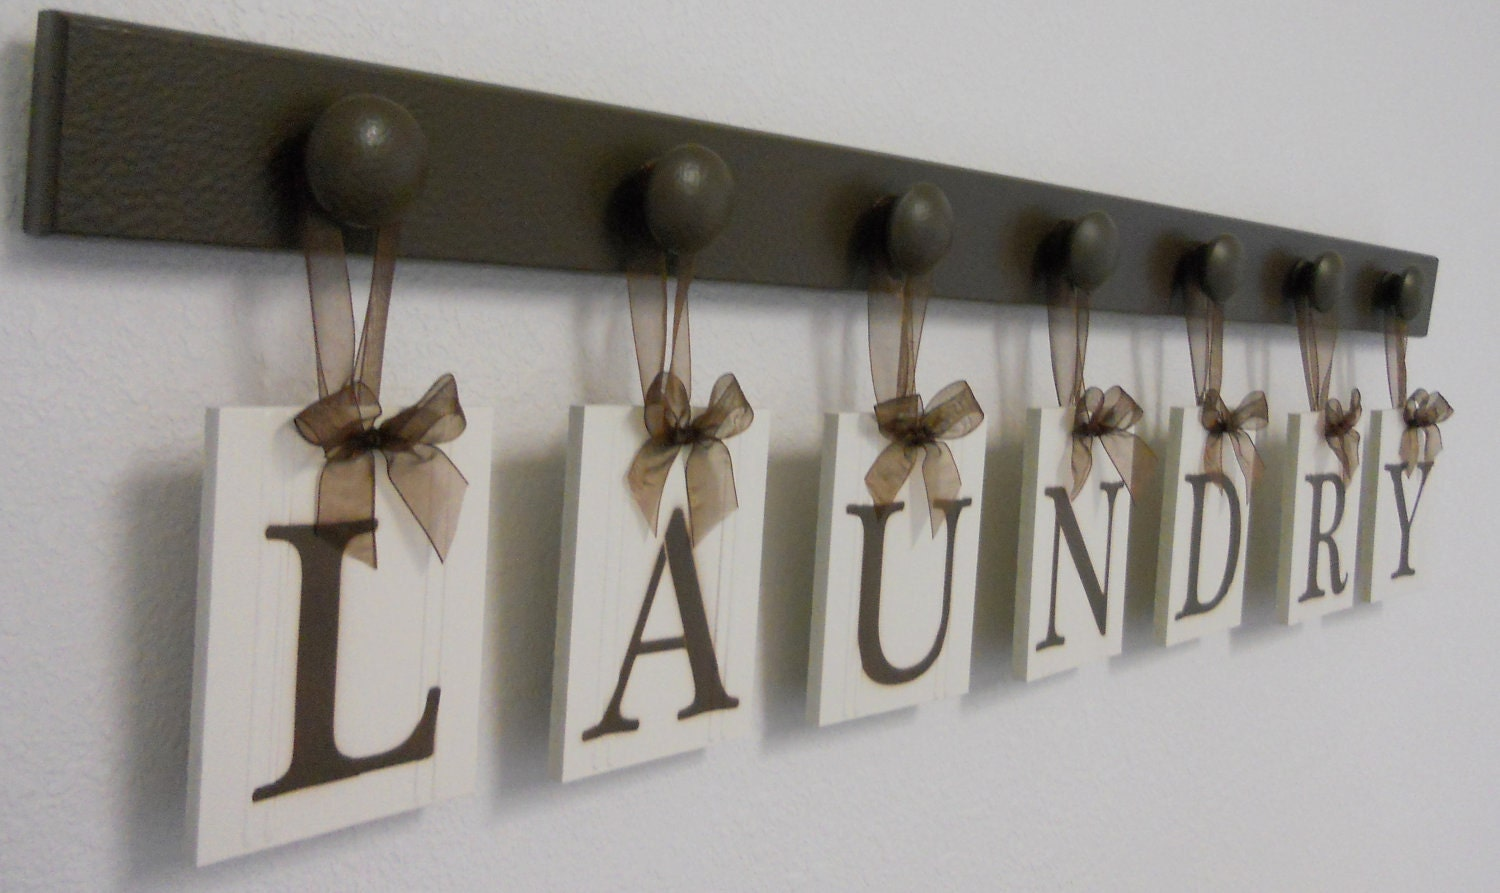 laundry room decor laundry sign laundry room sign With laundry letters decor